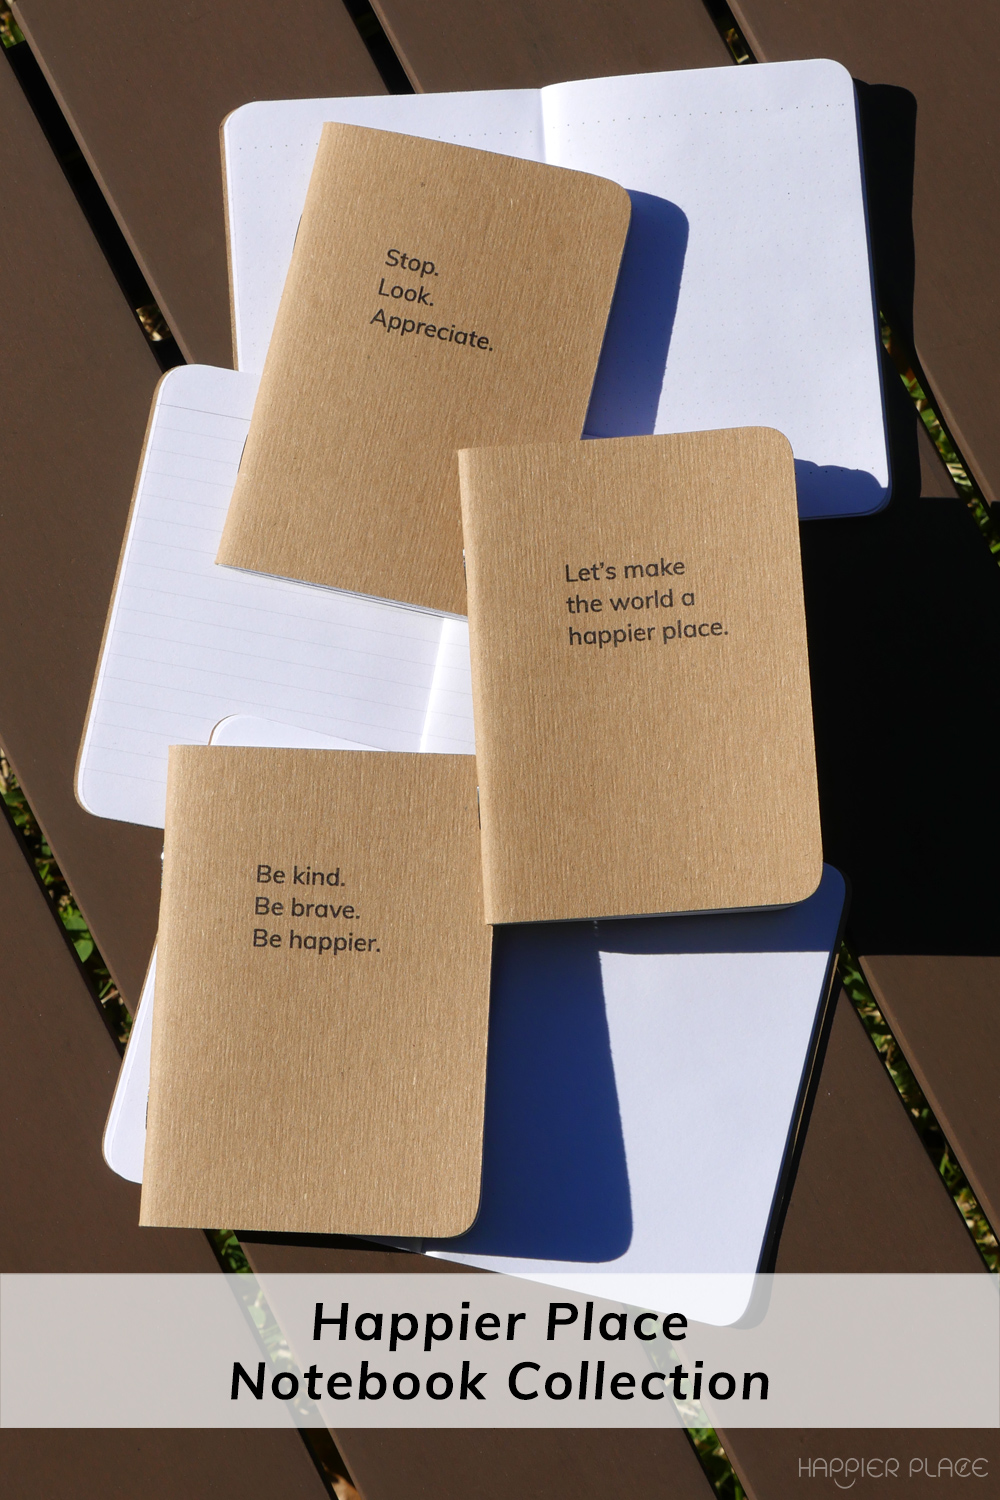 All three Happier Place Pocket Notebooks #HappierPlace #shopsmall #Bcorp #fieldnotes #sketch #giftidea